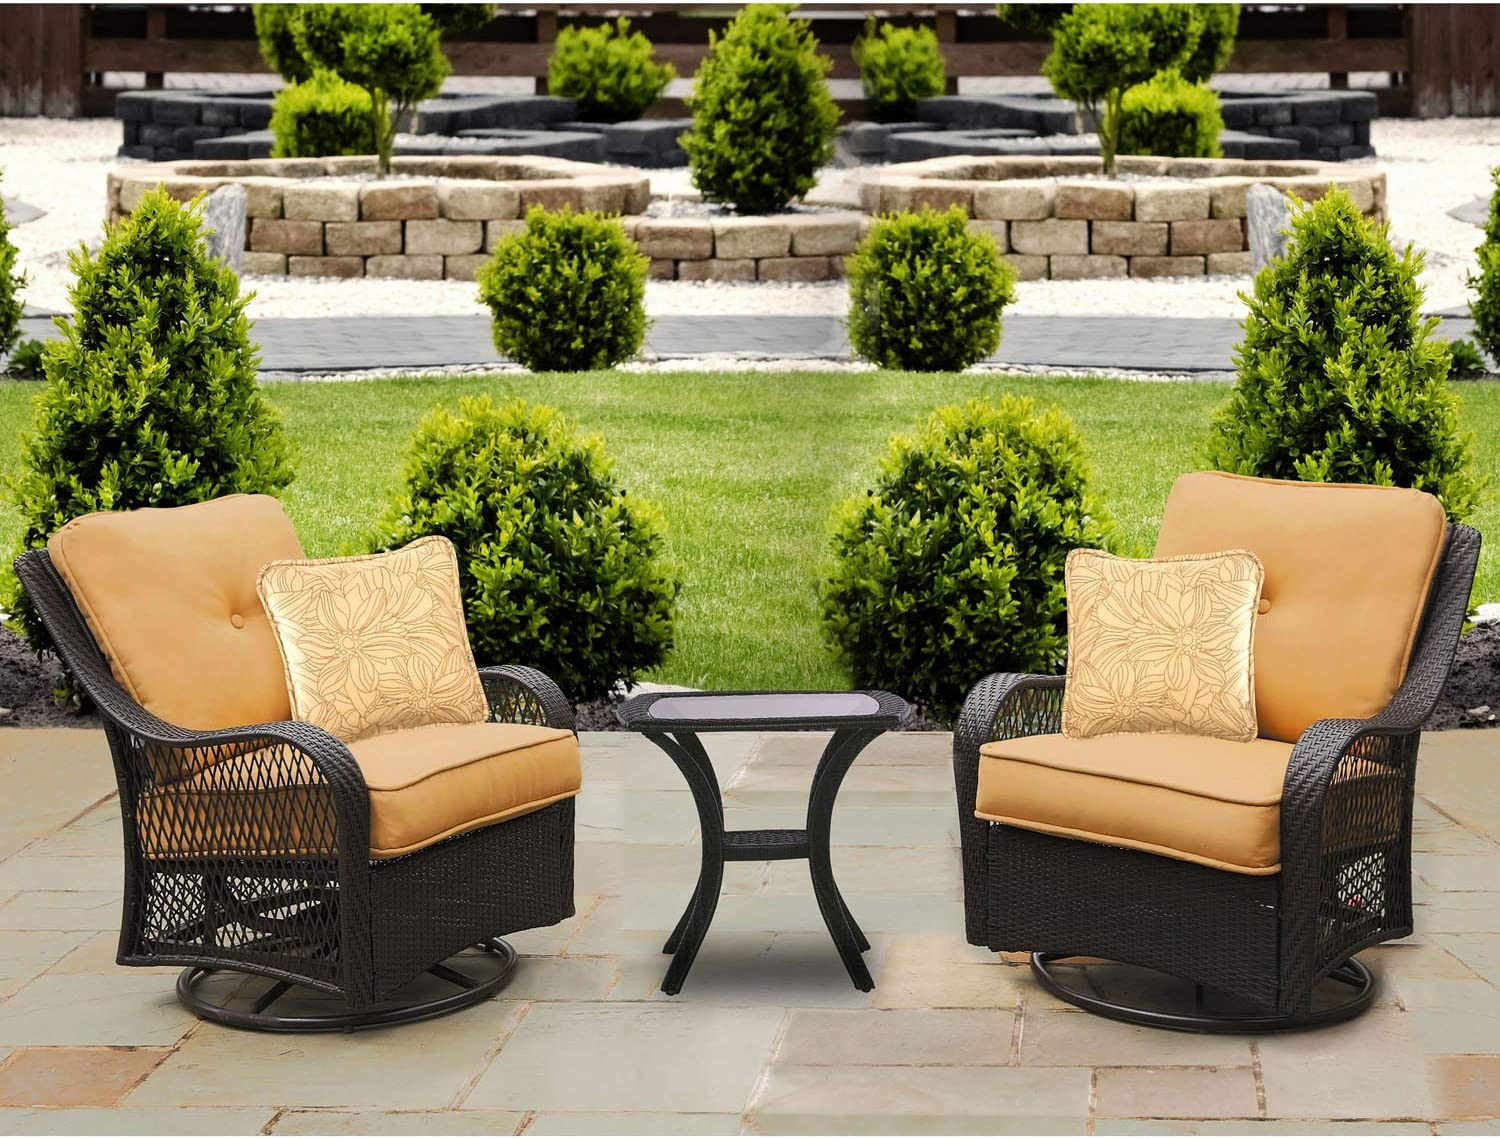 Hanover ORLEANS3PCSW-B-TAN Sahara Sand Orleans 3-Piece Swivel Gliding Chat Set